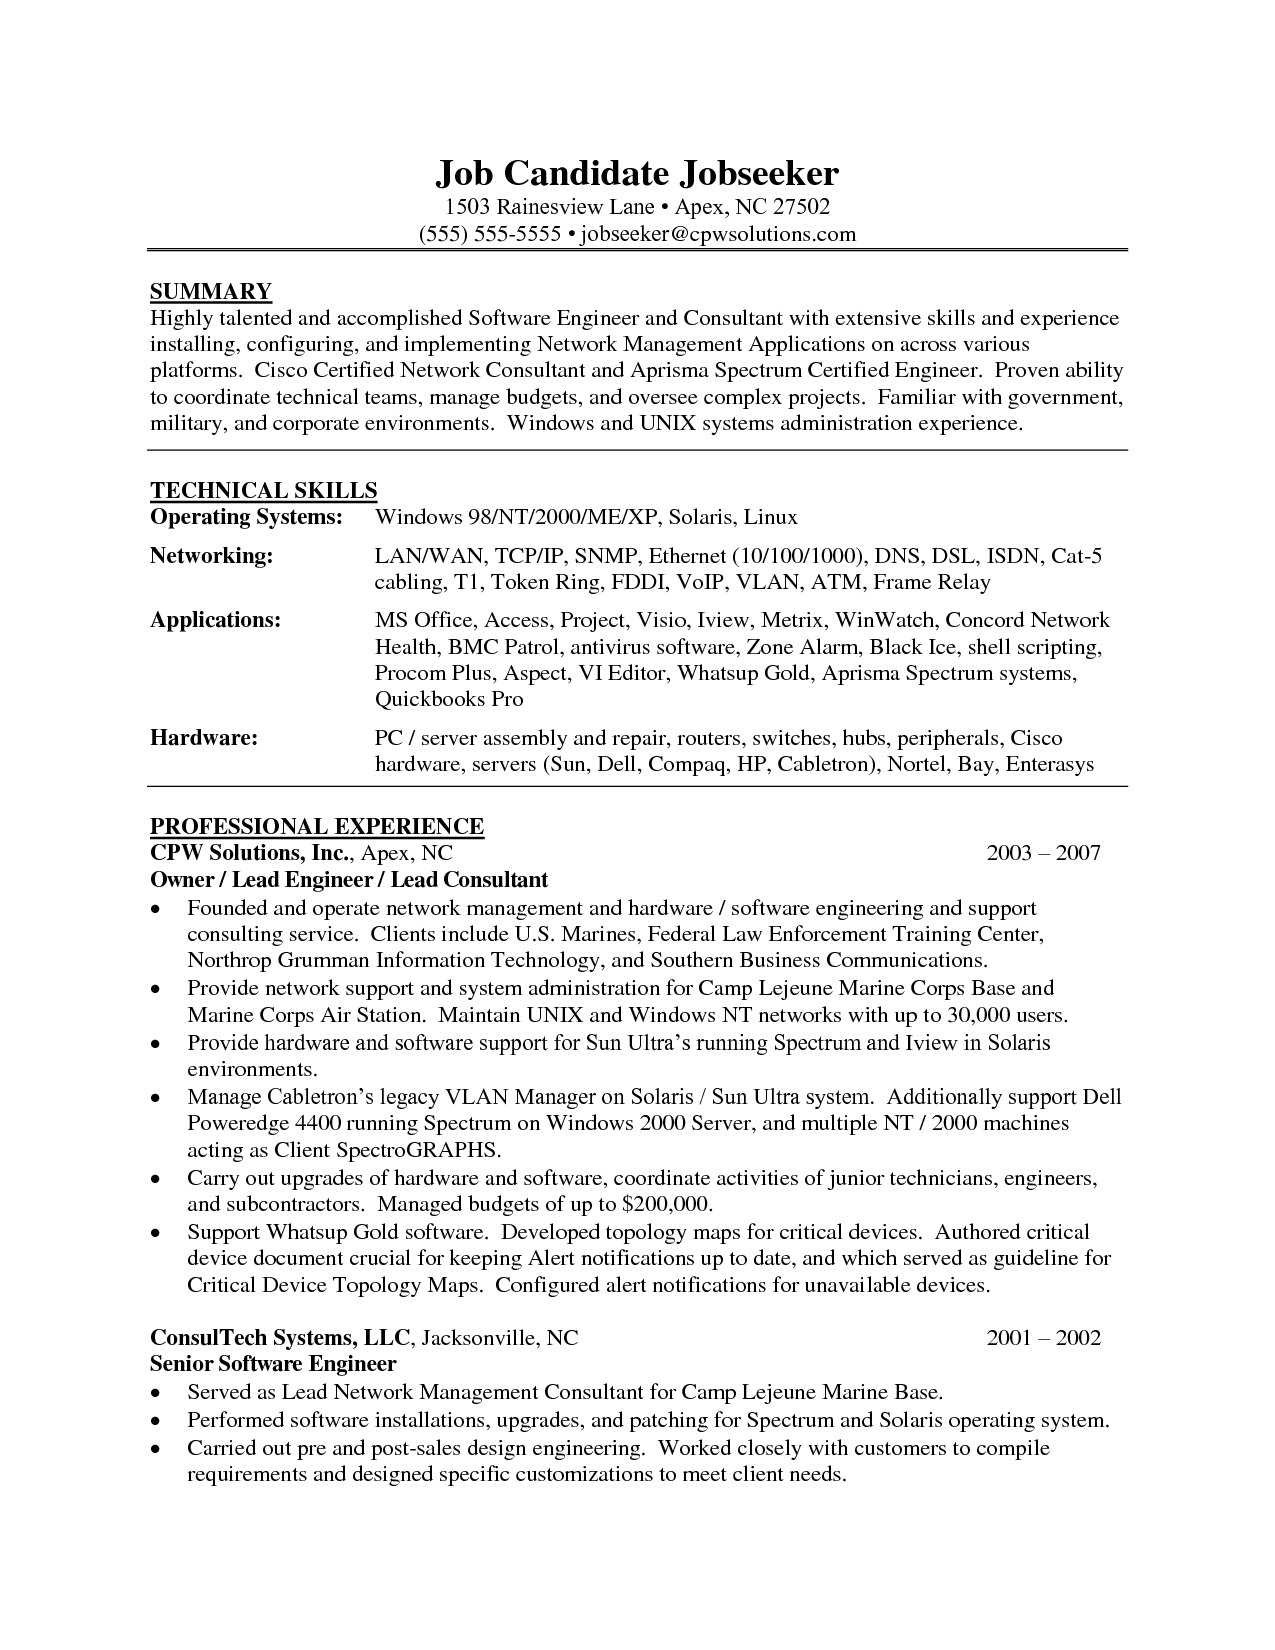 Resume summary engineer sainde org software quality assurance resume builder free print resume print a resume form website free resume template free yelopaper